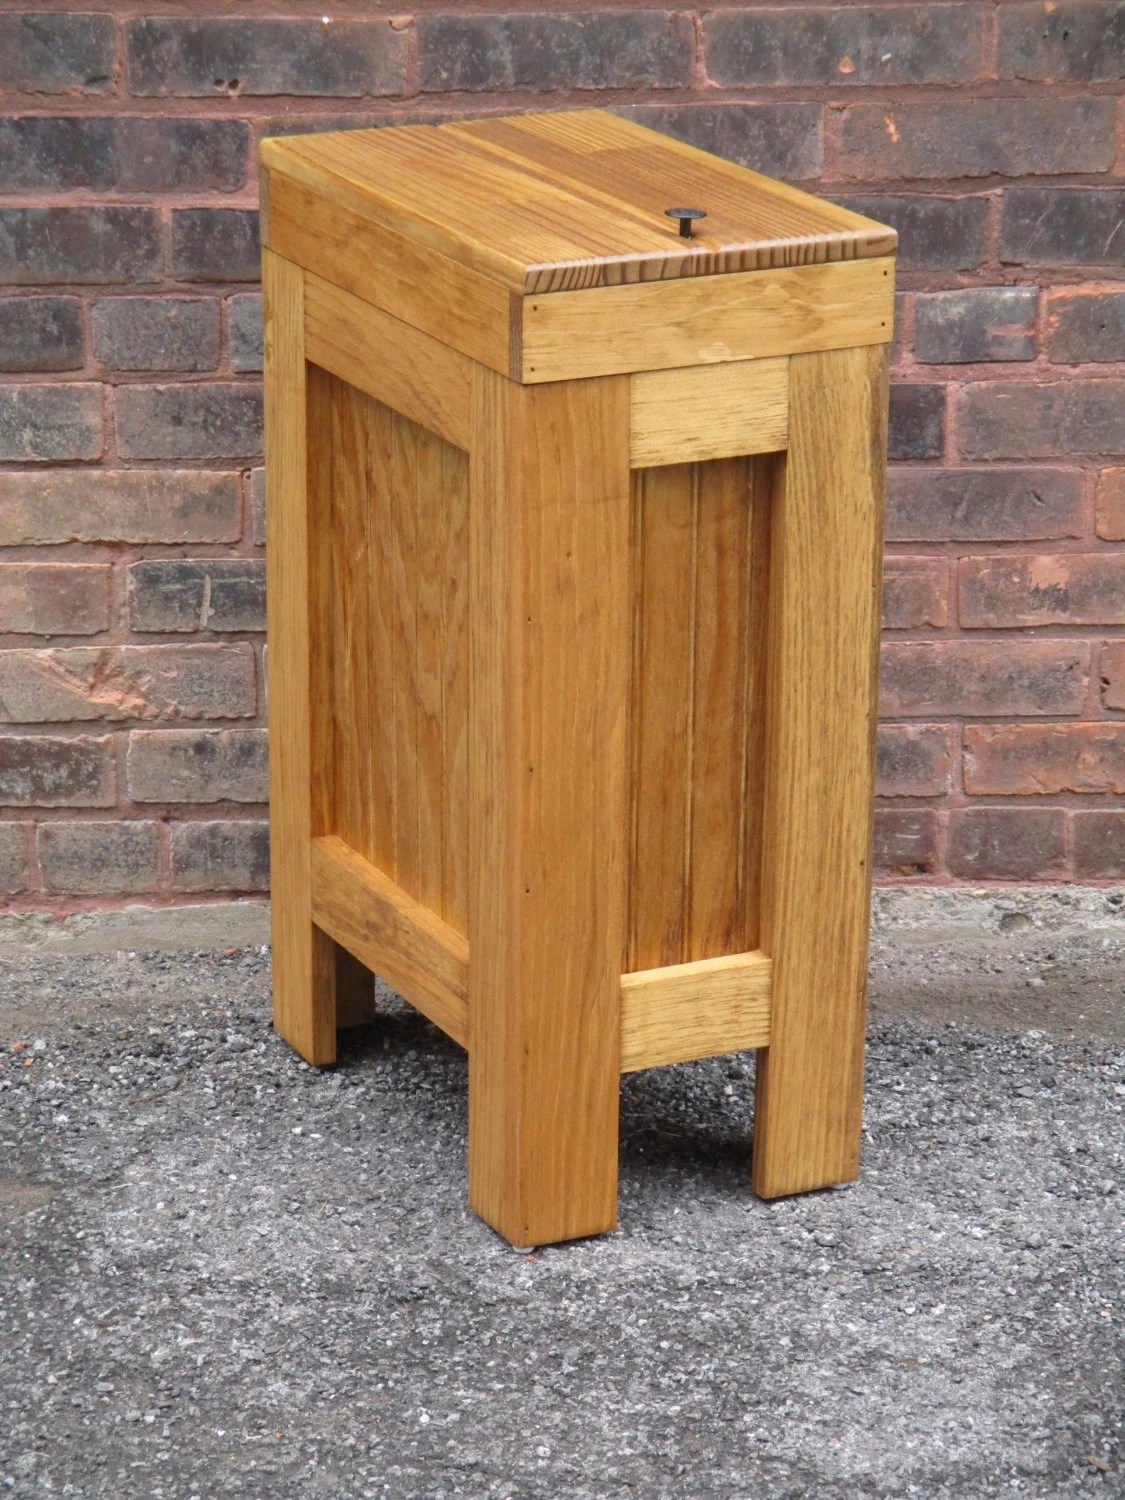 Wooden Kitchen Trash Containers Wood Trash Bin Wood Trash Can Kitchen Garbage Can Dog Food